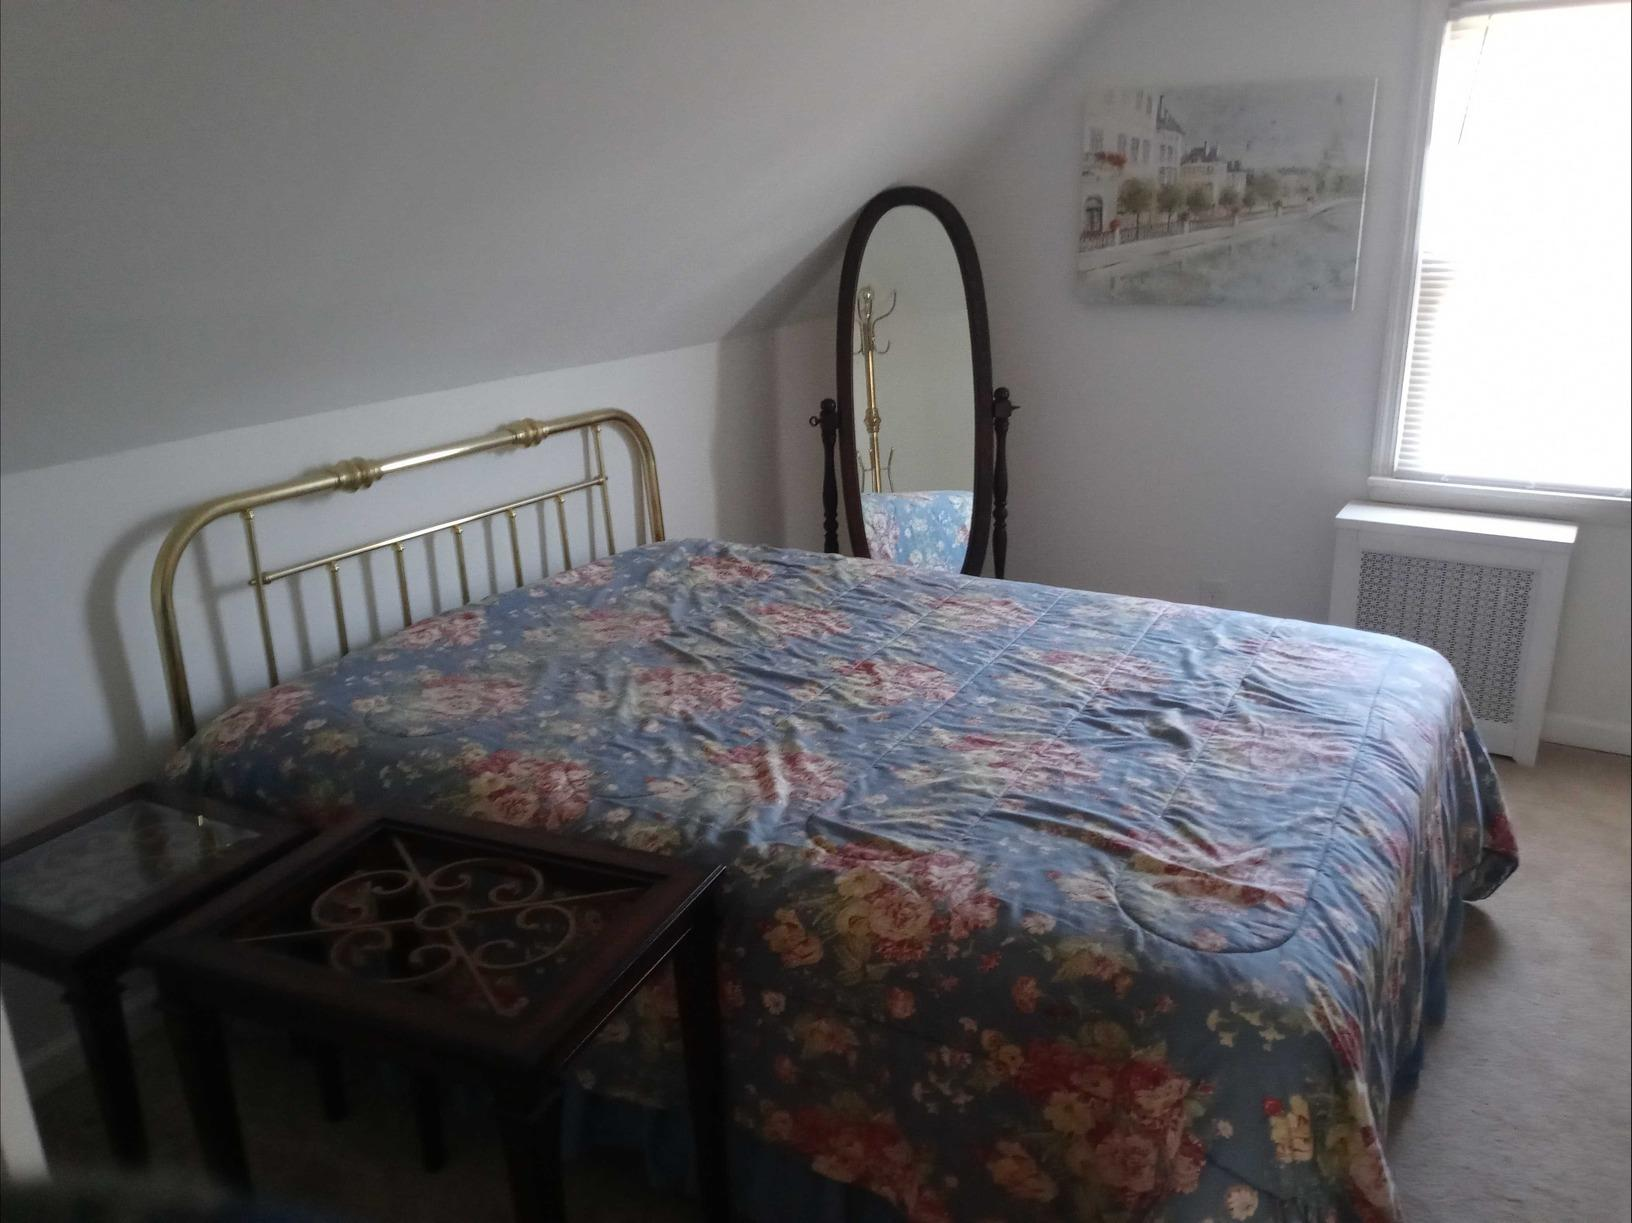 Mattress Removal in Malverne, NY - Before Photo